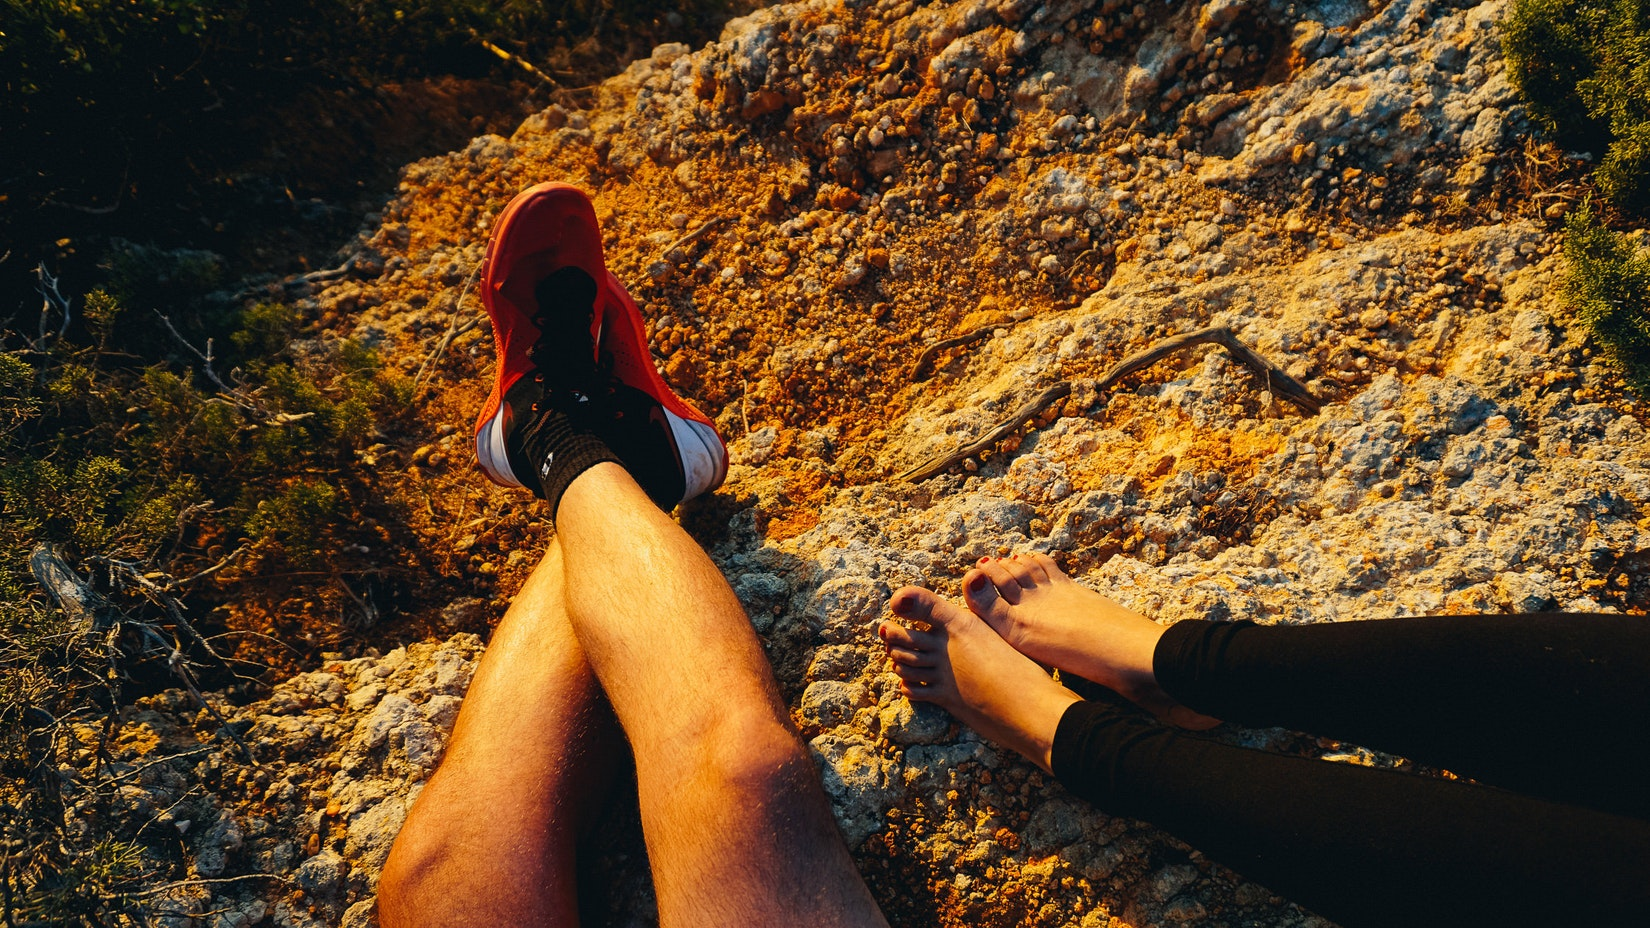 Feet of girl and guy against rocks during sunset hour at cliffs